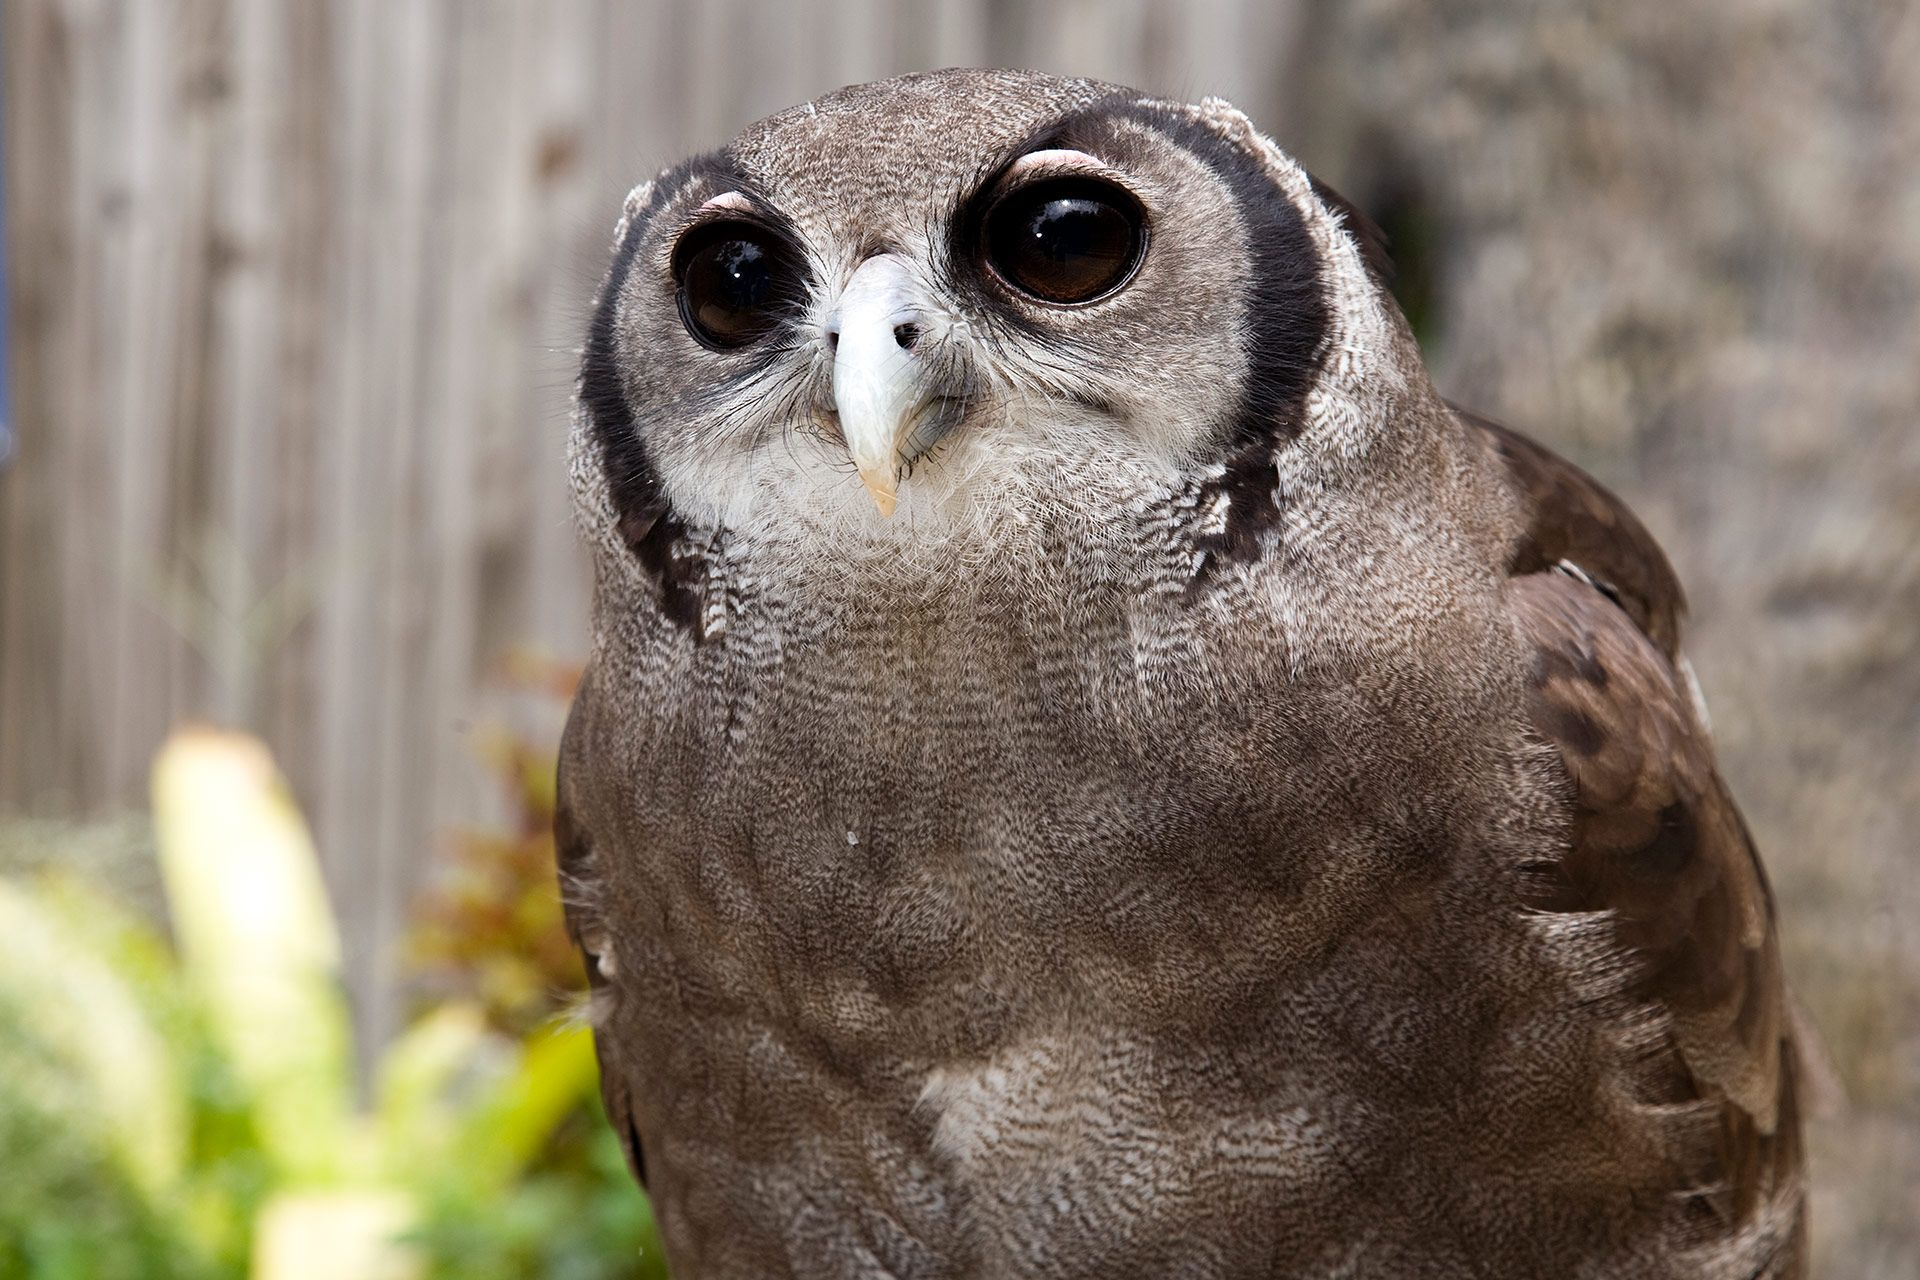 This Is One Of The Larger Owls In The World And They Prey On Virtually Any Small To Medium Sized Animal They Generally Hunt At Night Owl Owl Zoo Atlanta Zoo